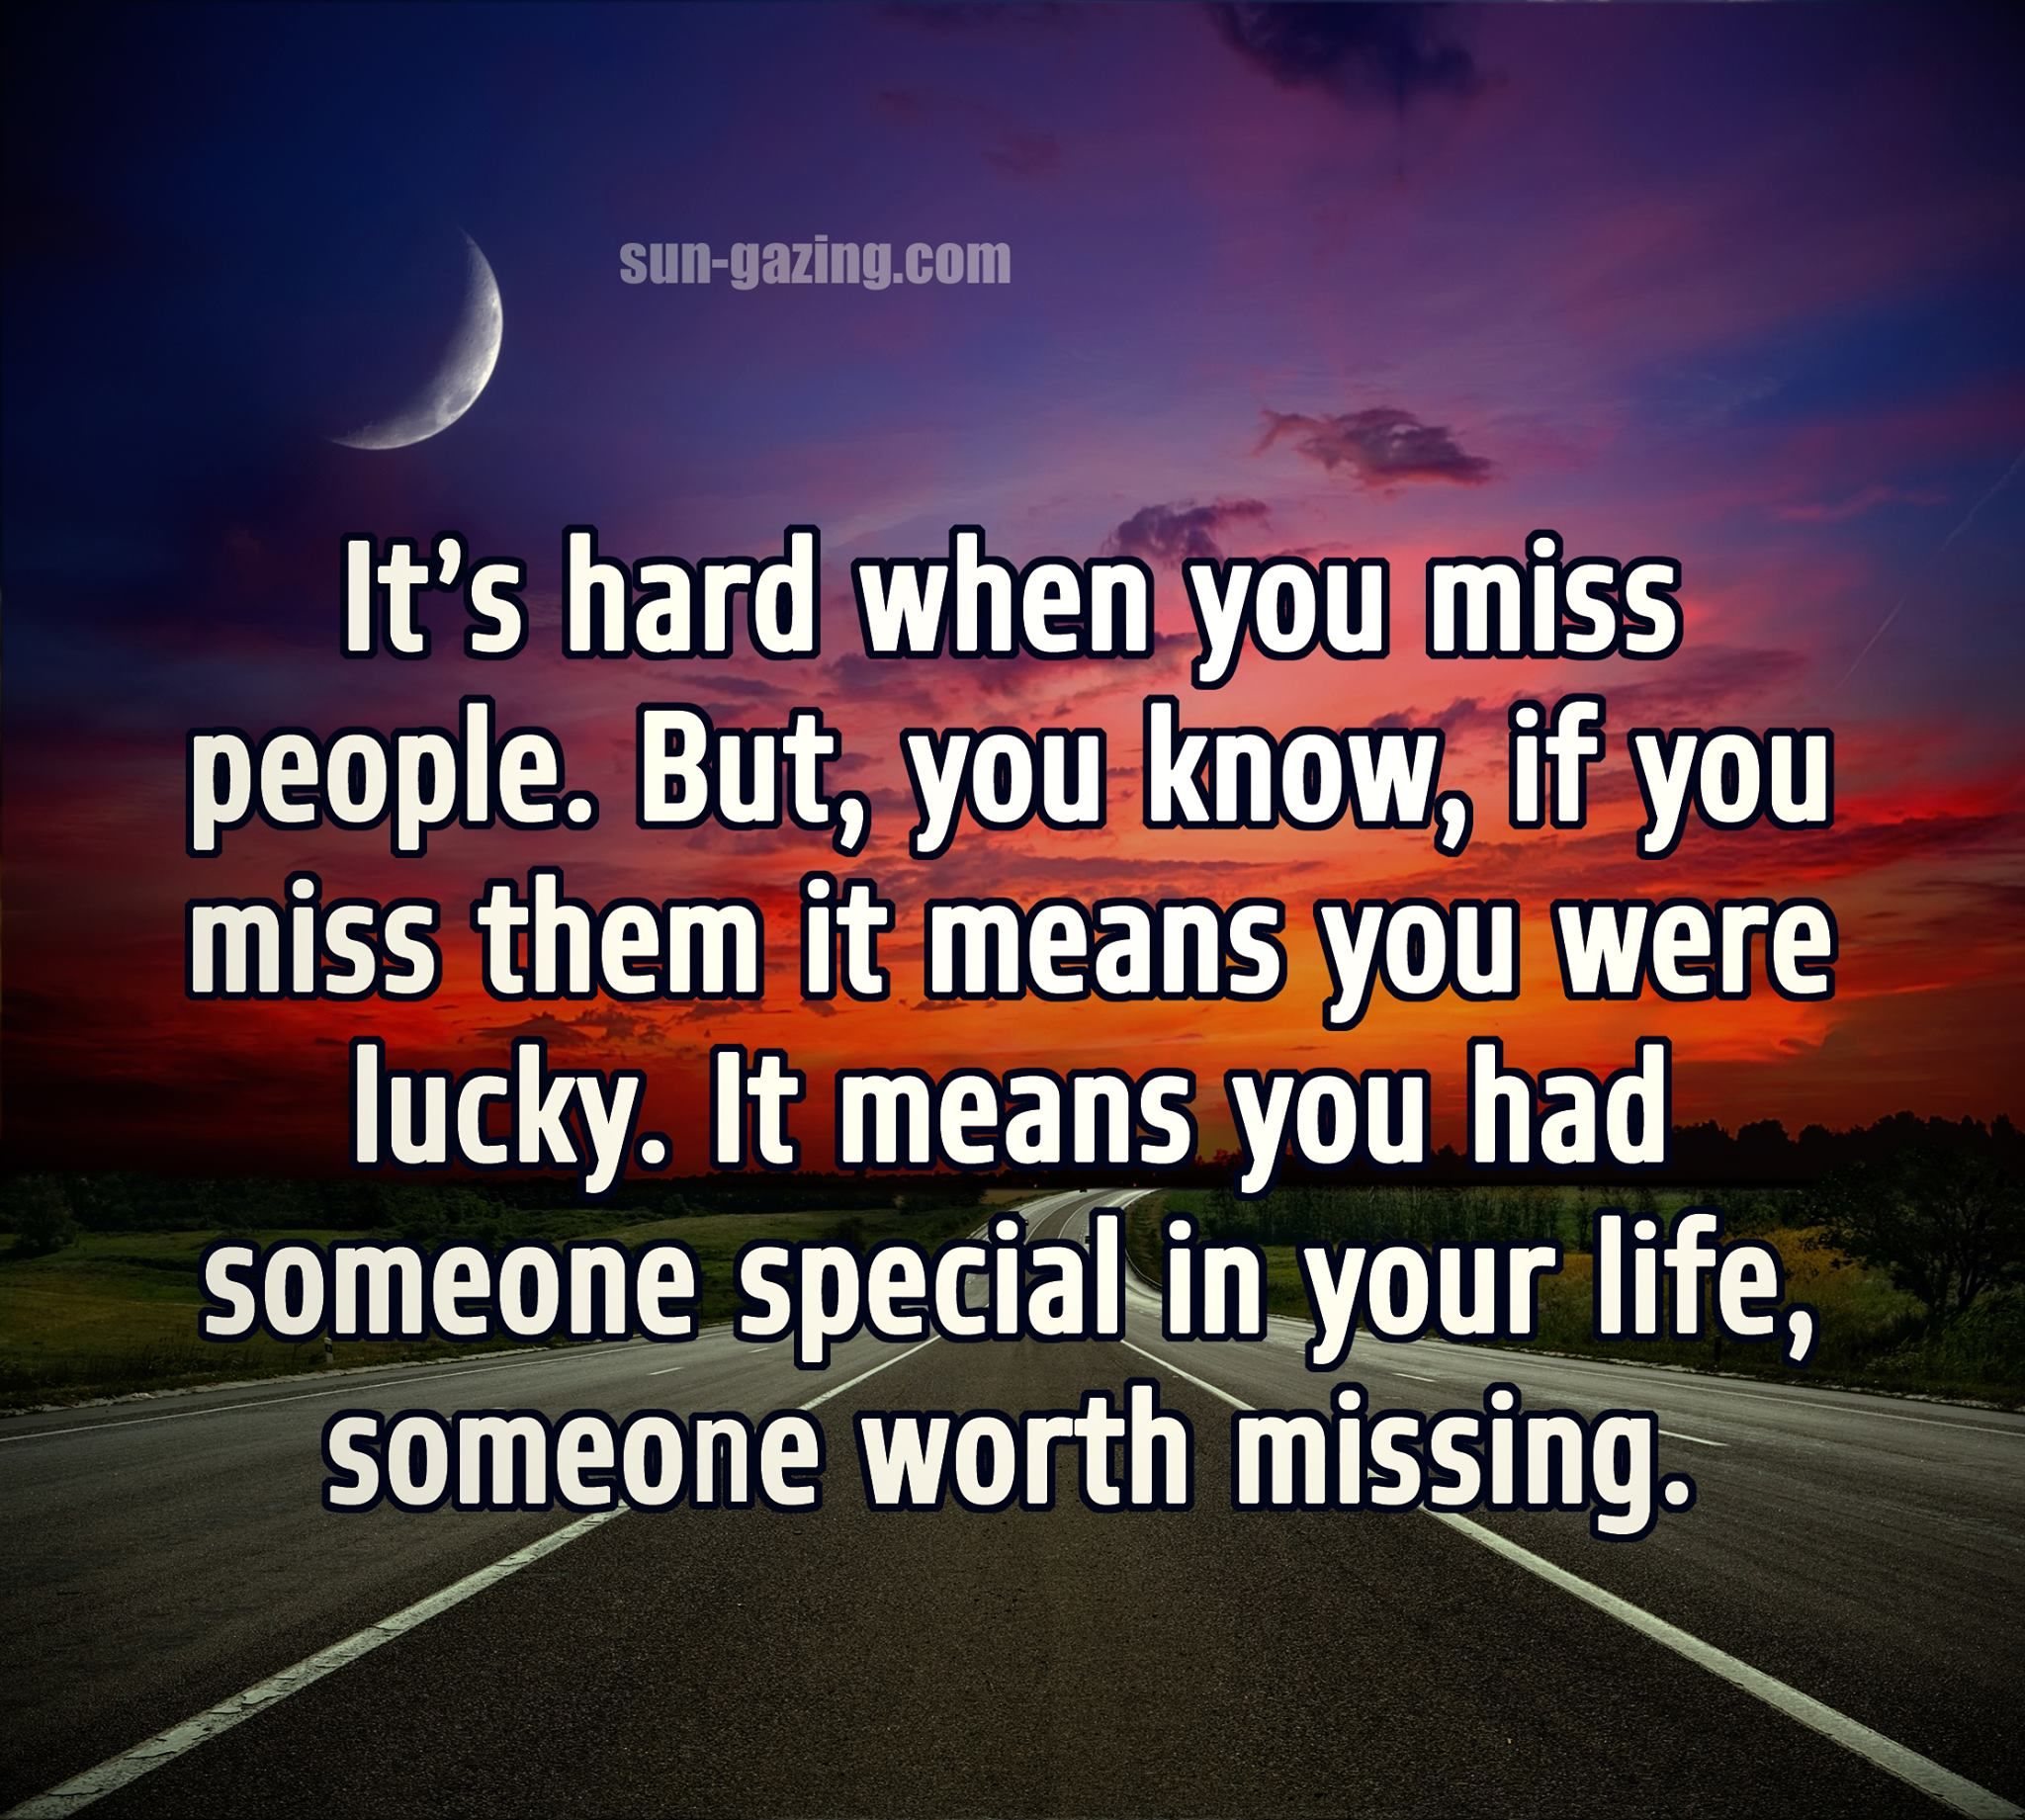 Missing Someone At Christmas Quotes: When You Miss Someone Pictures, Photos, And Images For